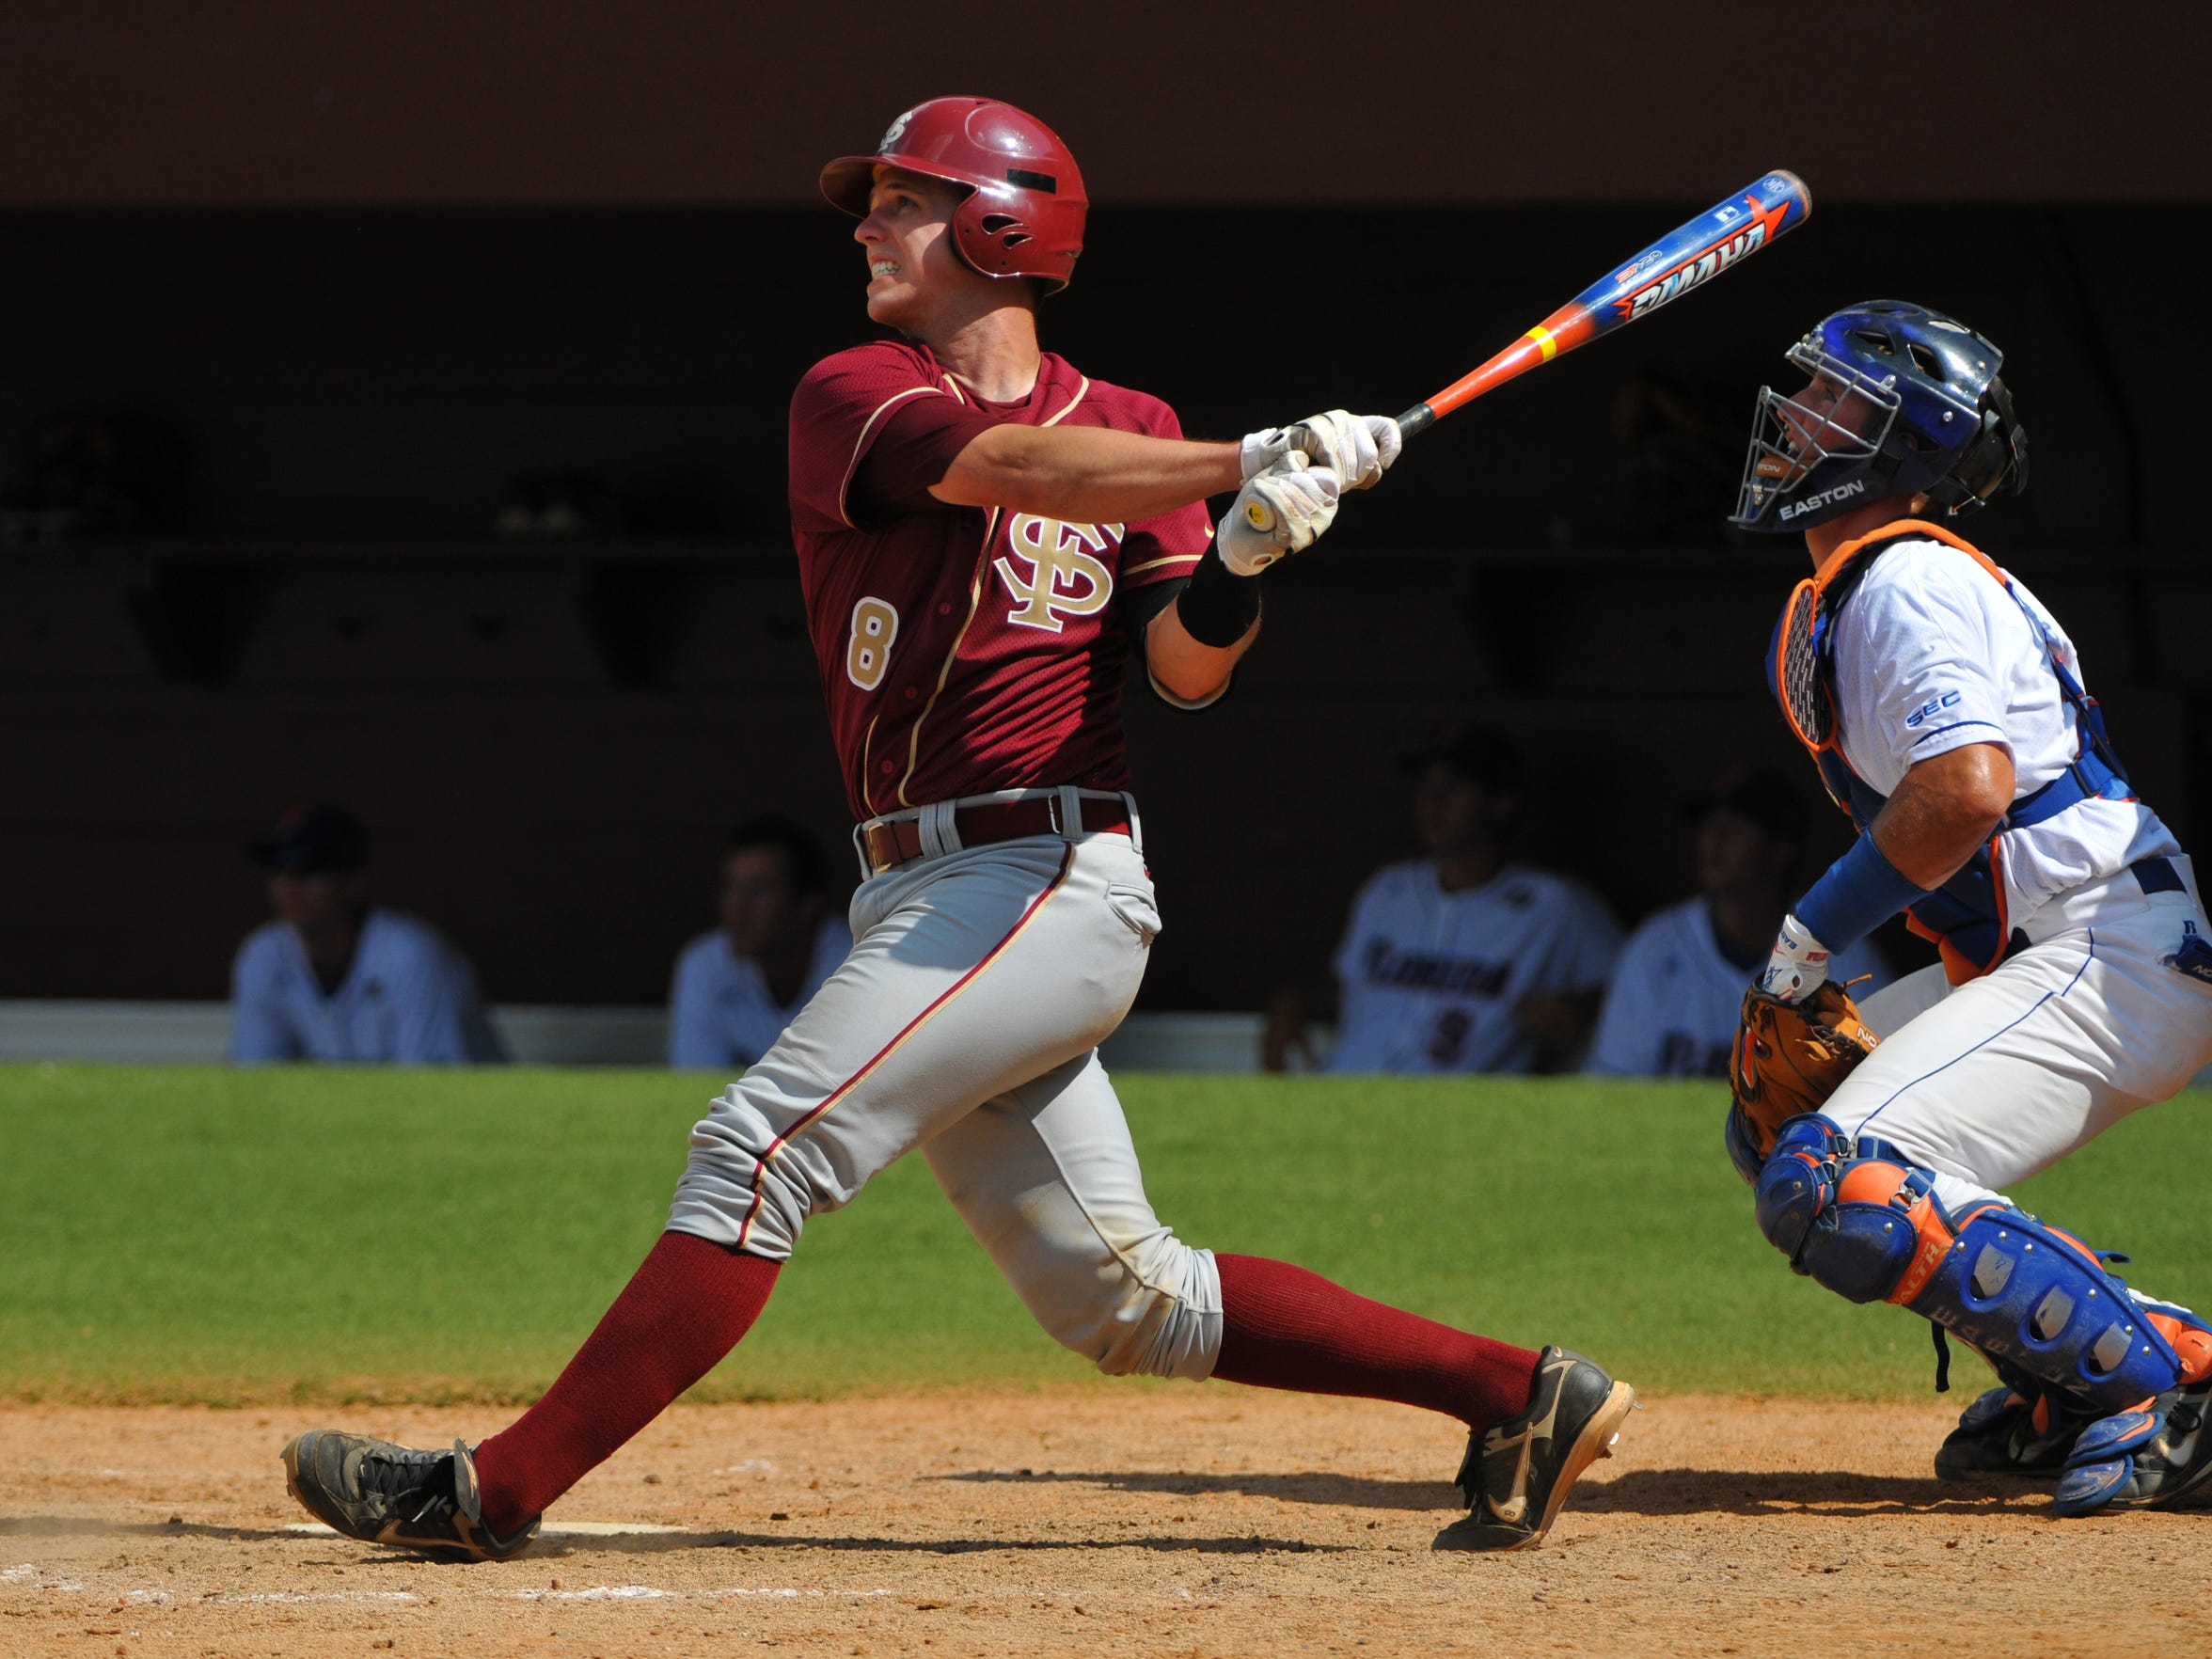 Posey batted .463 in his senior season with the Seminoles